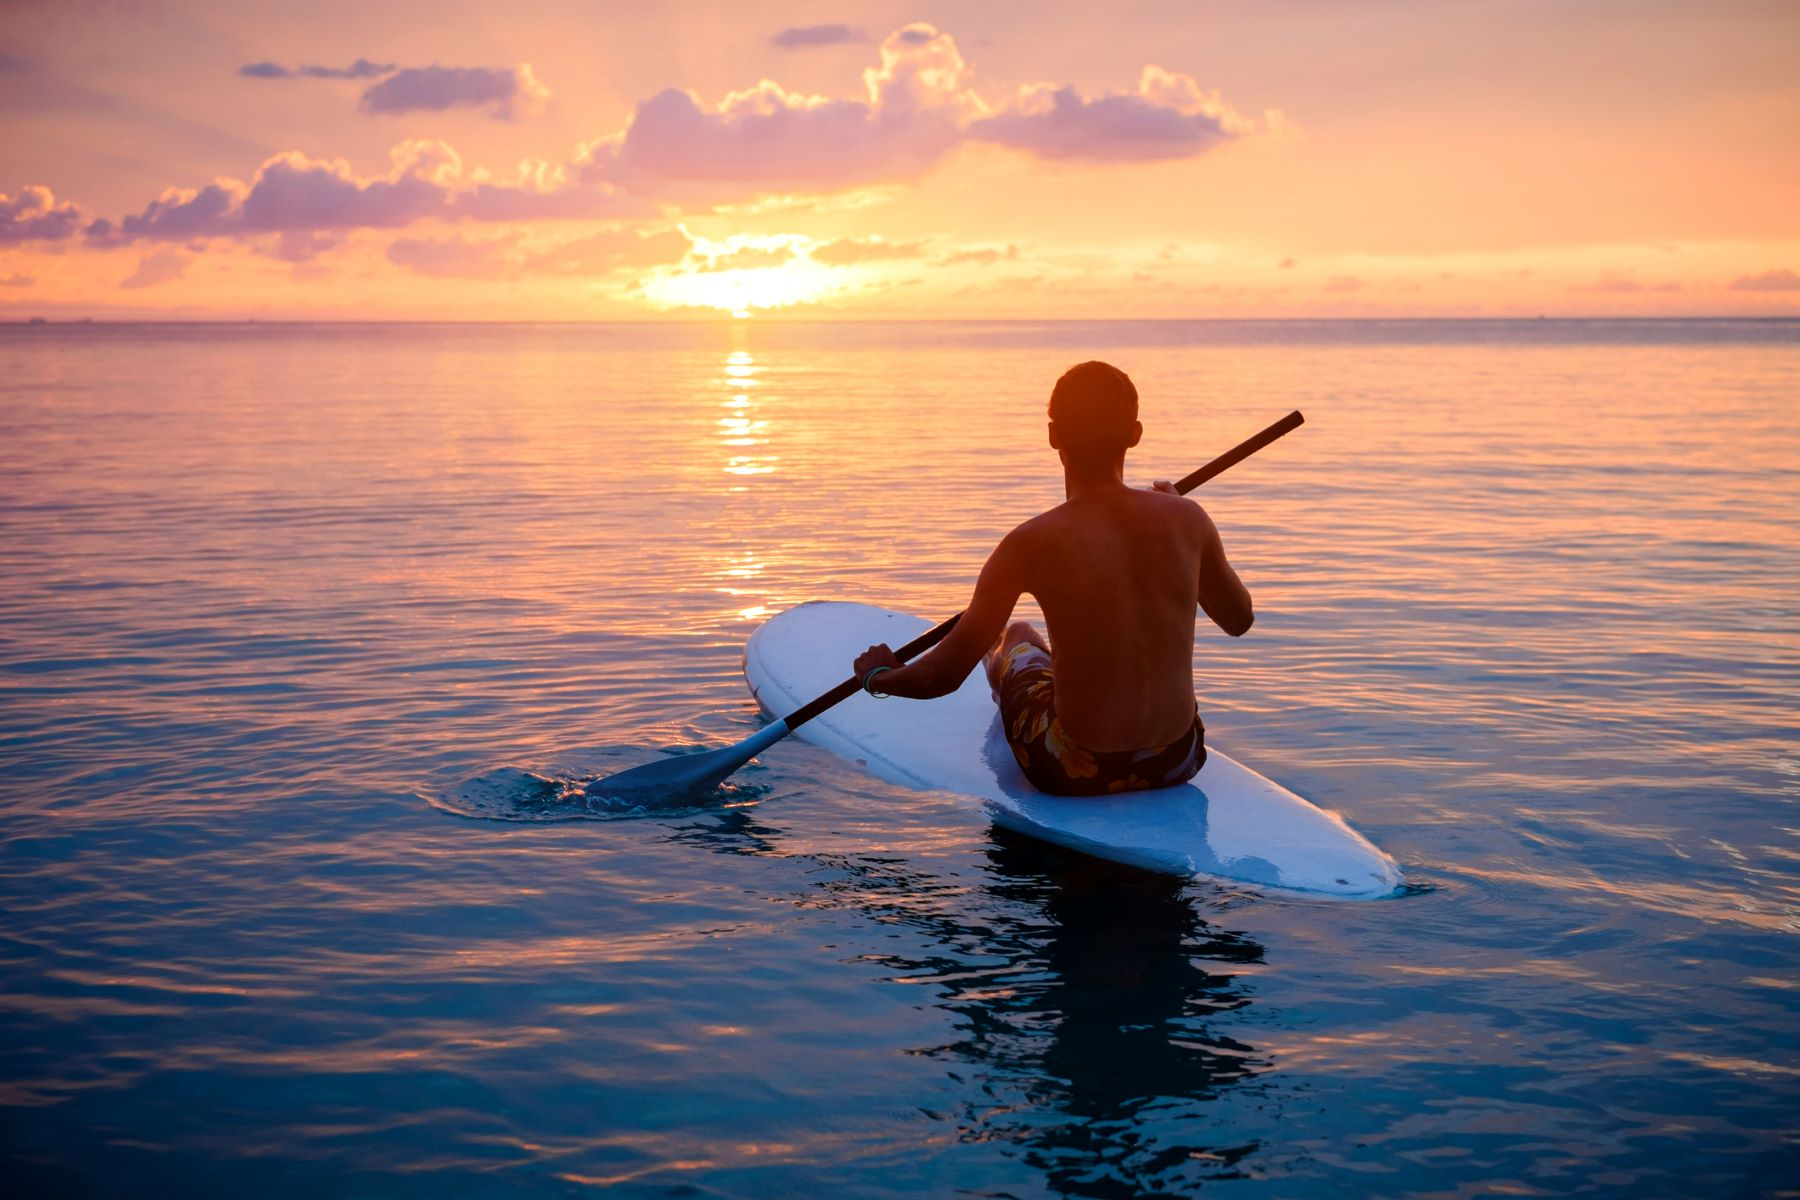 paddle boarding in sunset